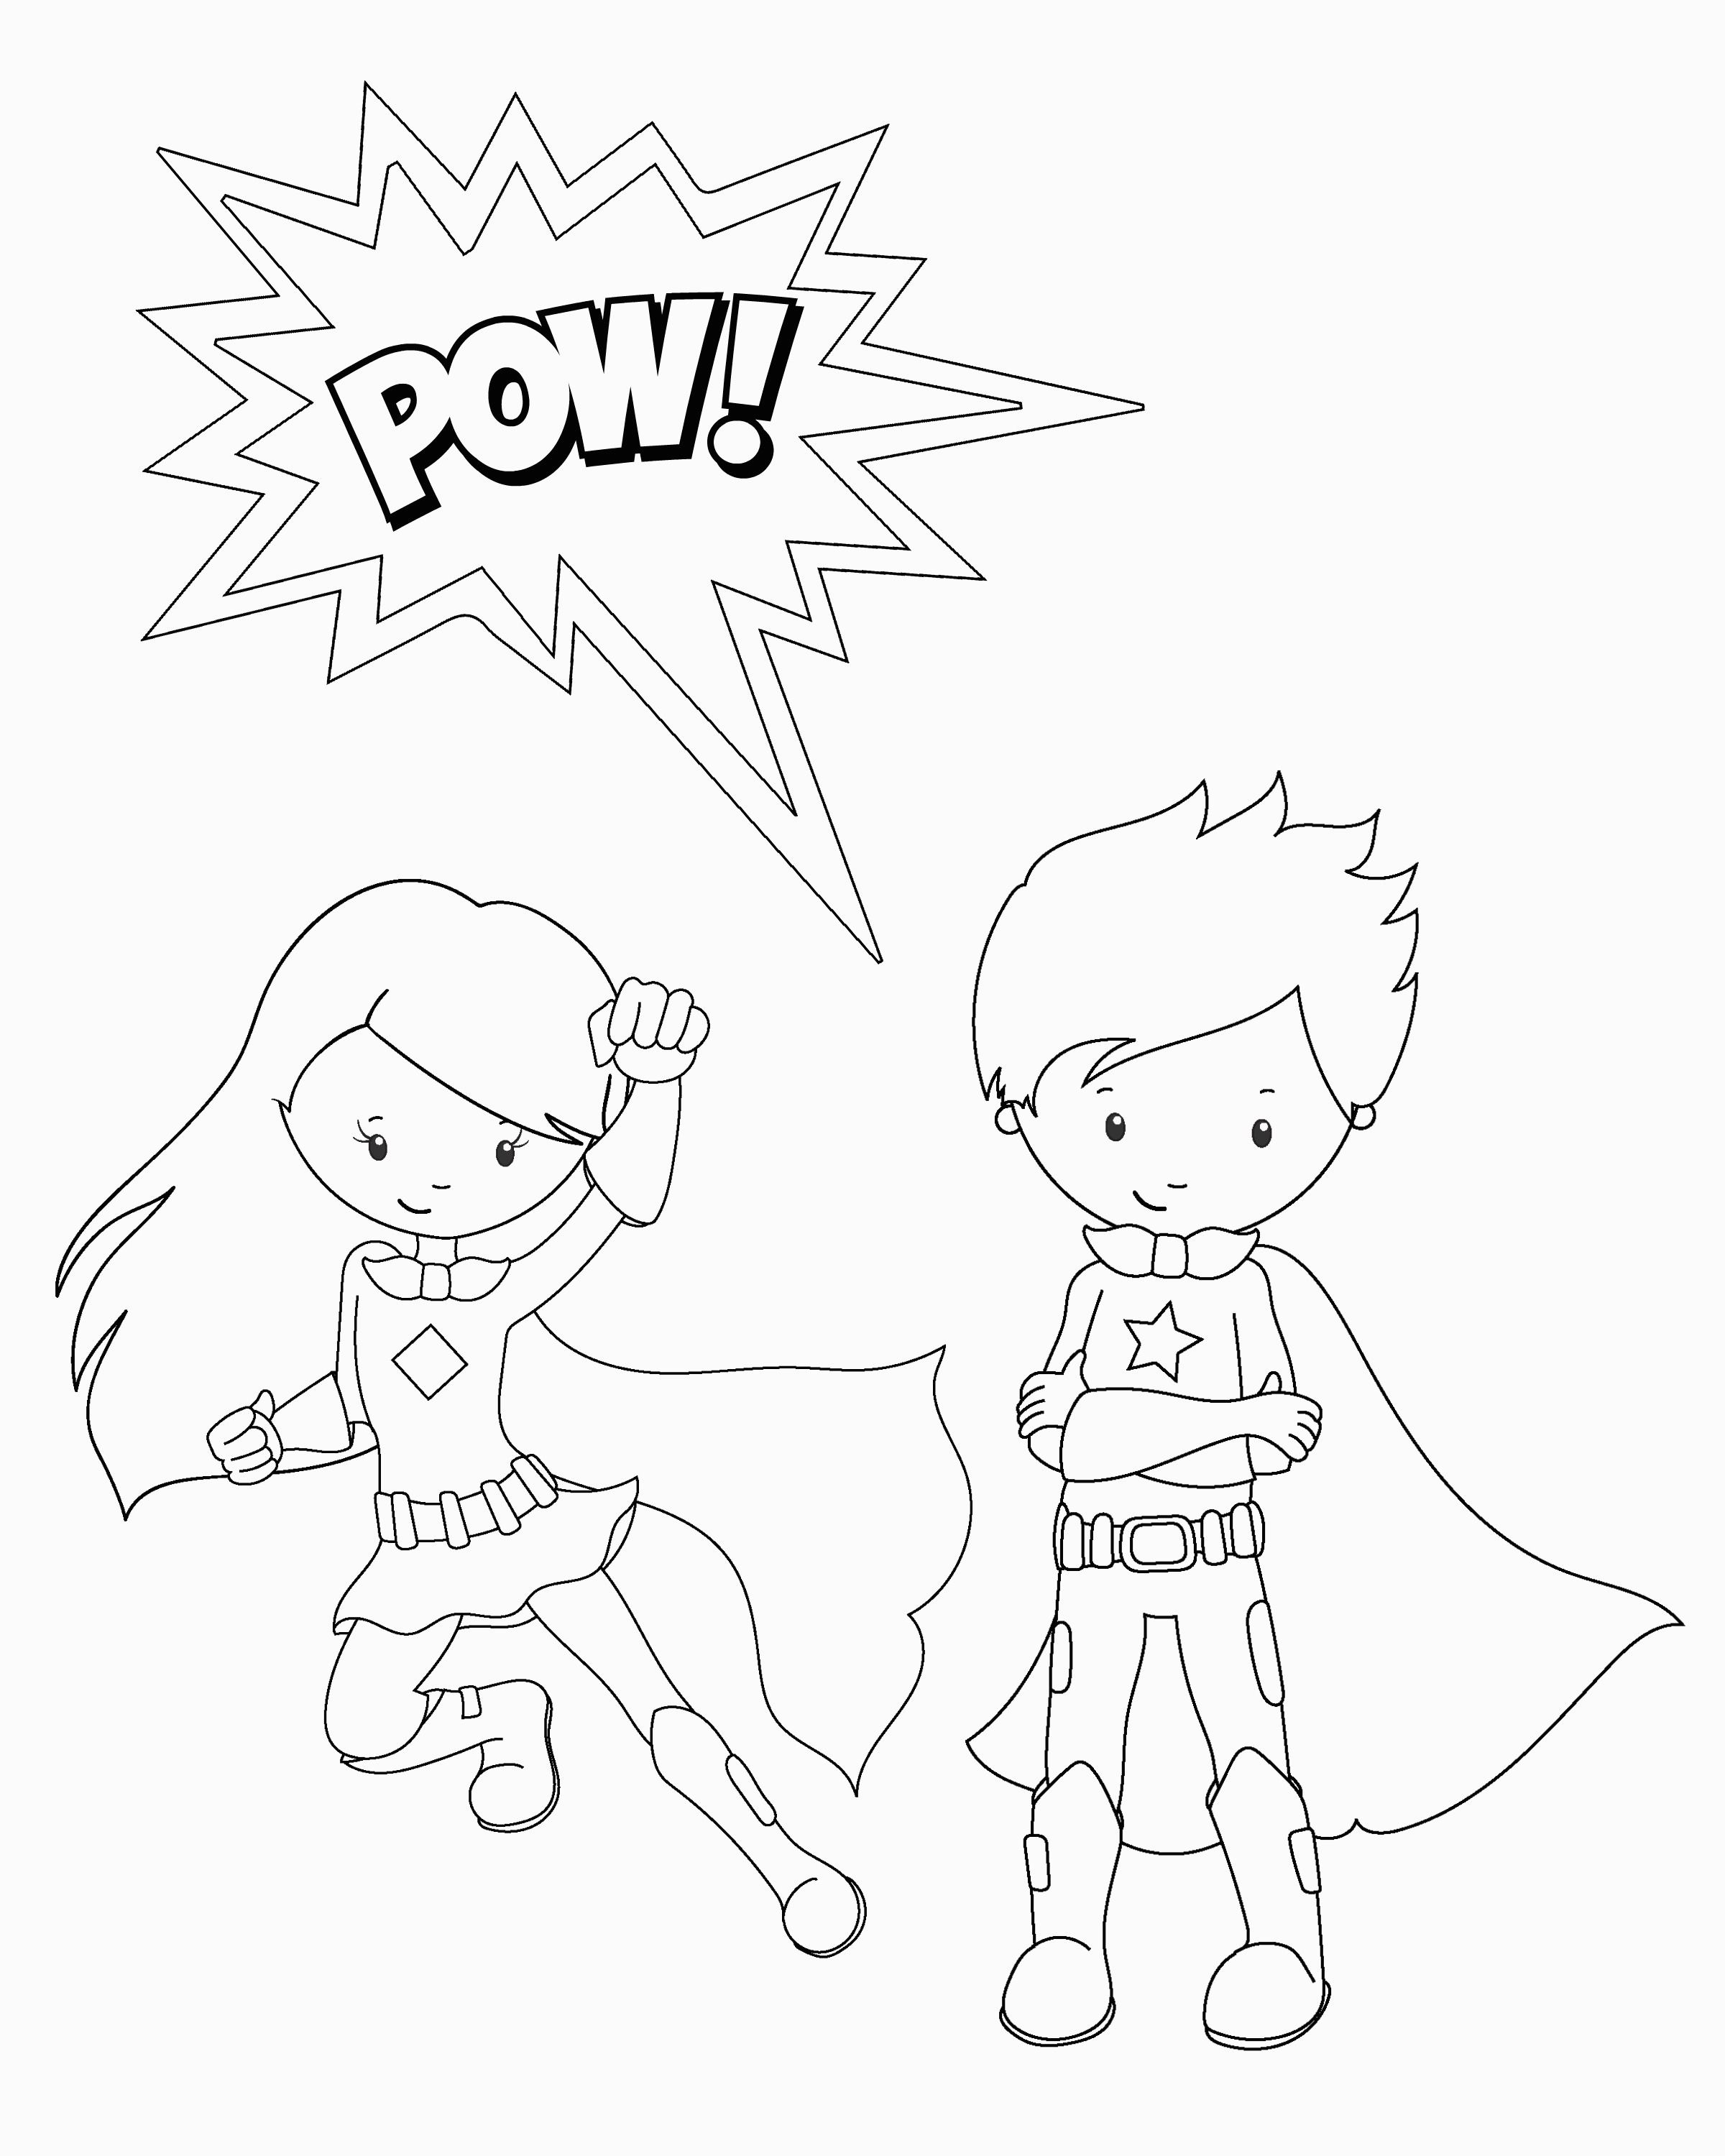 Coloring Book 33 Fabulous Free Superhero Coloring Pages Supergirl Super Hero Coloring Sheets Superhero Coloring Superhero Coloring Pages